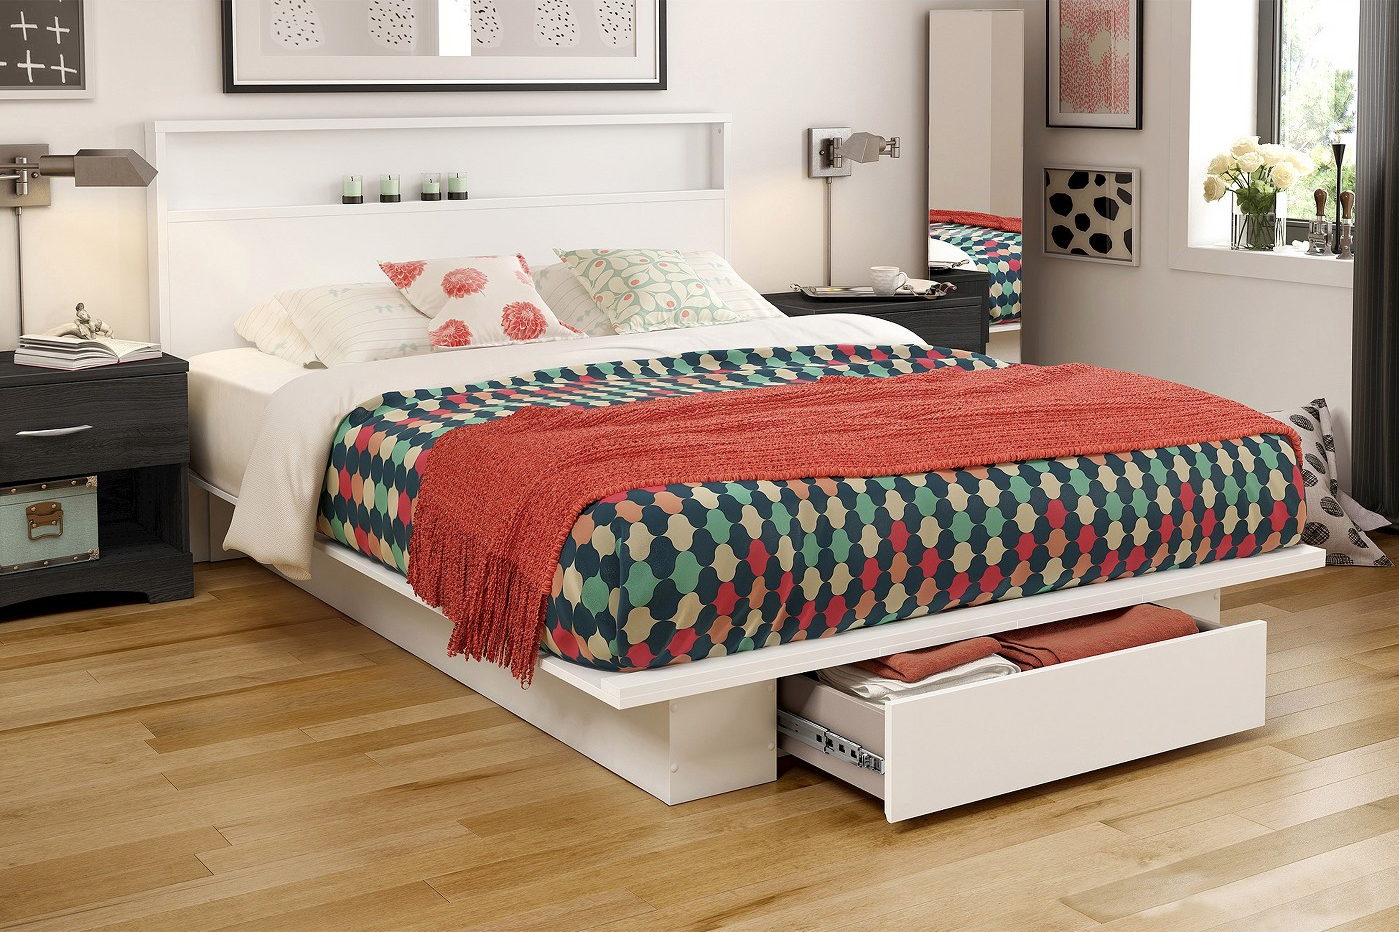 Picture of: 10 Best Storage Beds With Drawers And Cubbies Bedroom Storage Ideas